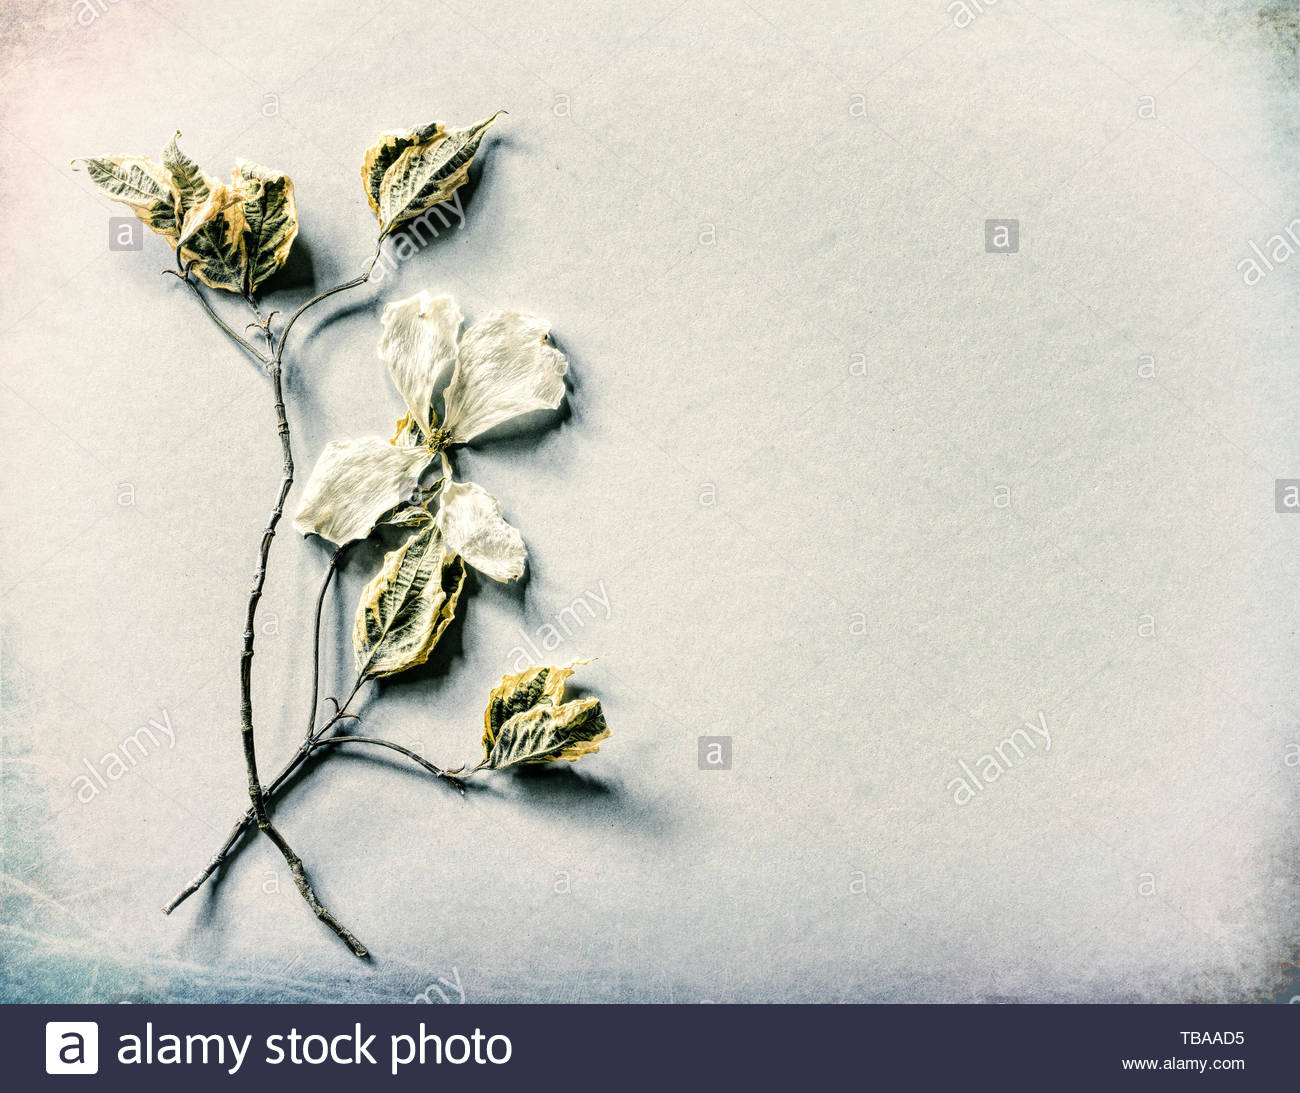 Cream White Card with Dried White Dogwood Flower, leaves and stems on paper background with room or space for copy, text or your words.  Horizontal - Stock Image